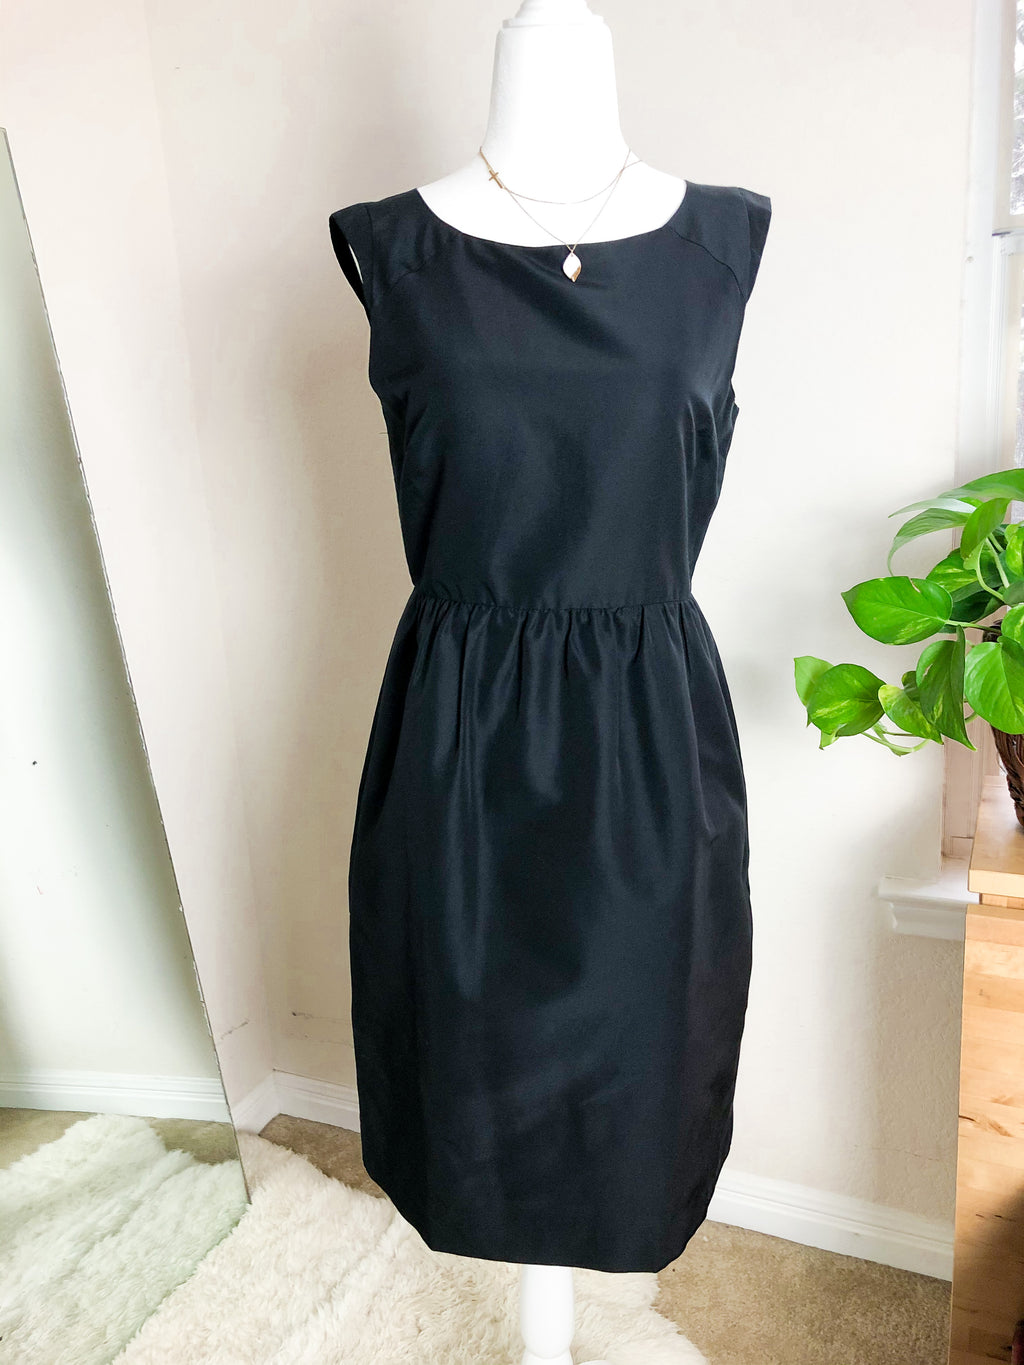 J. Crew Silk Blend Little Black Dress